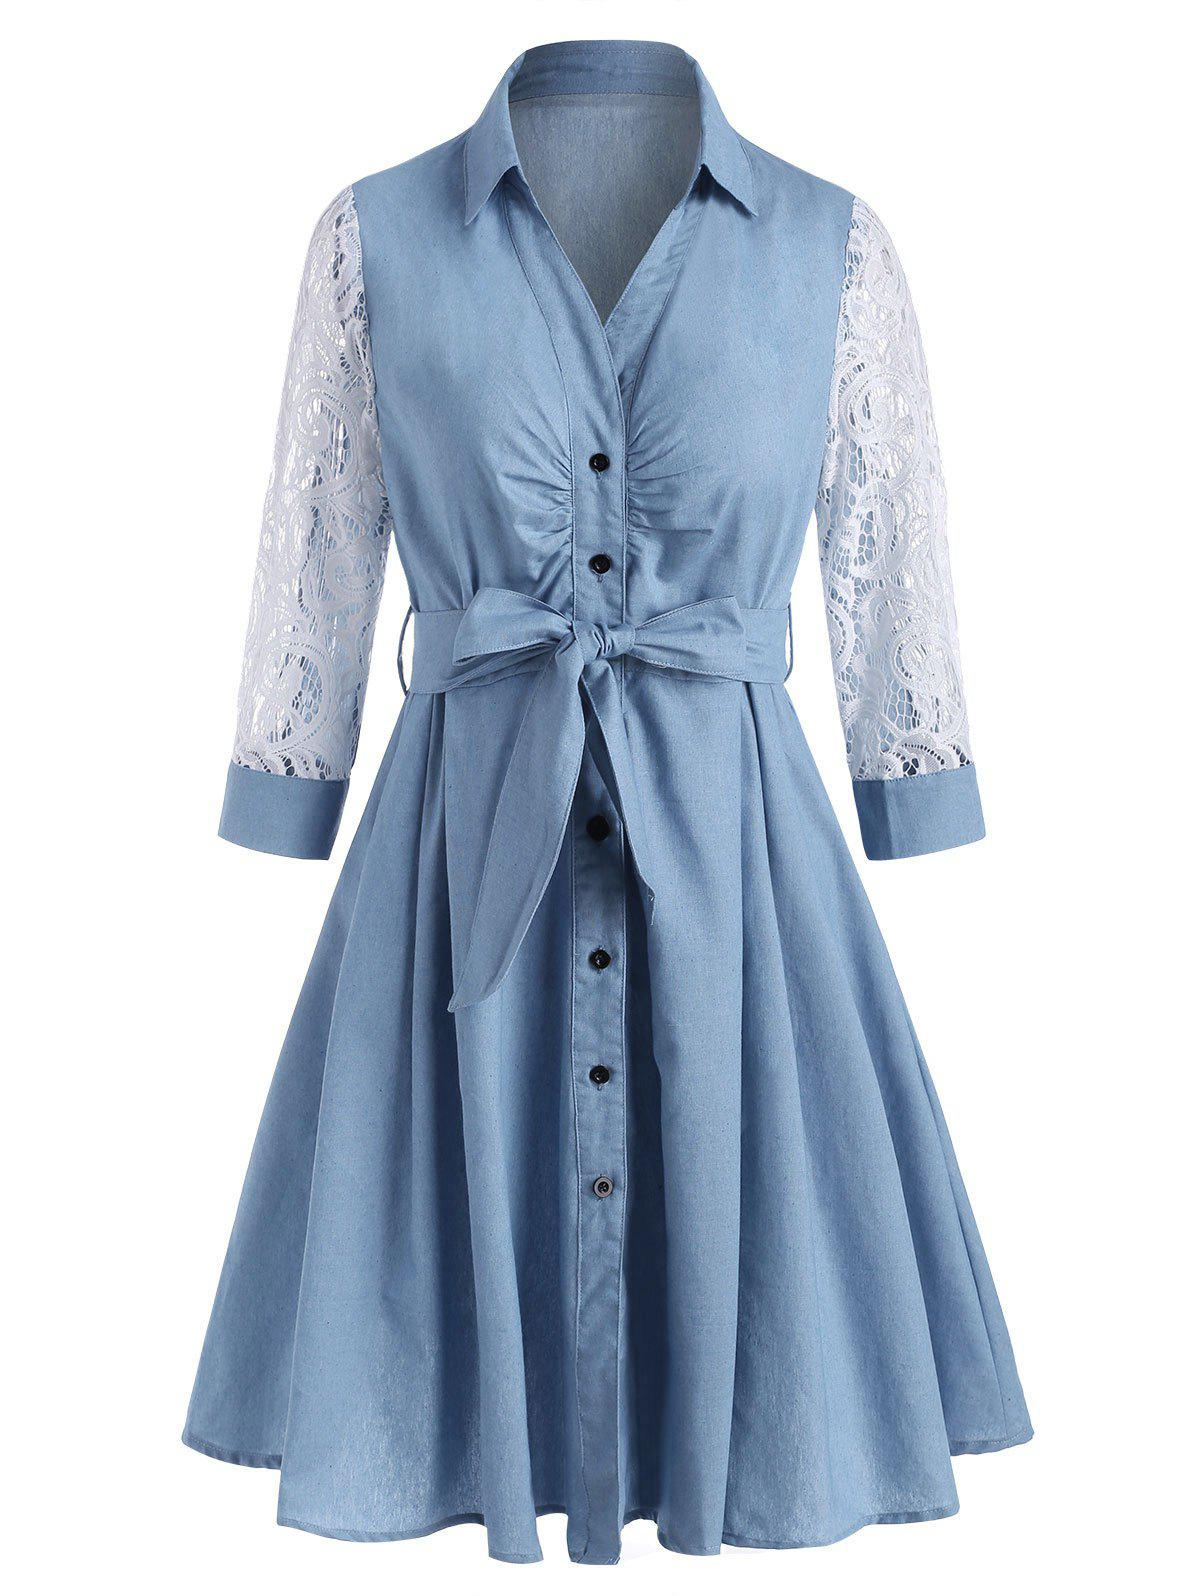 Lace Sleeve Chambray Belt Shirt Dress - LIGHT BLUE M